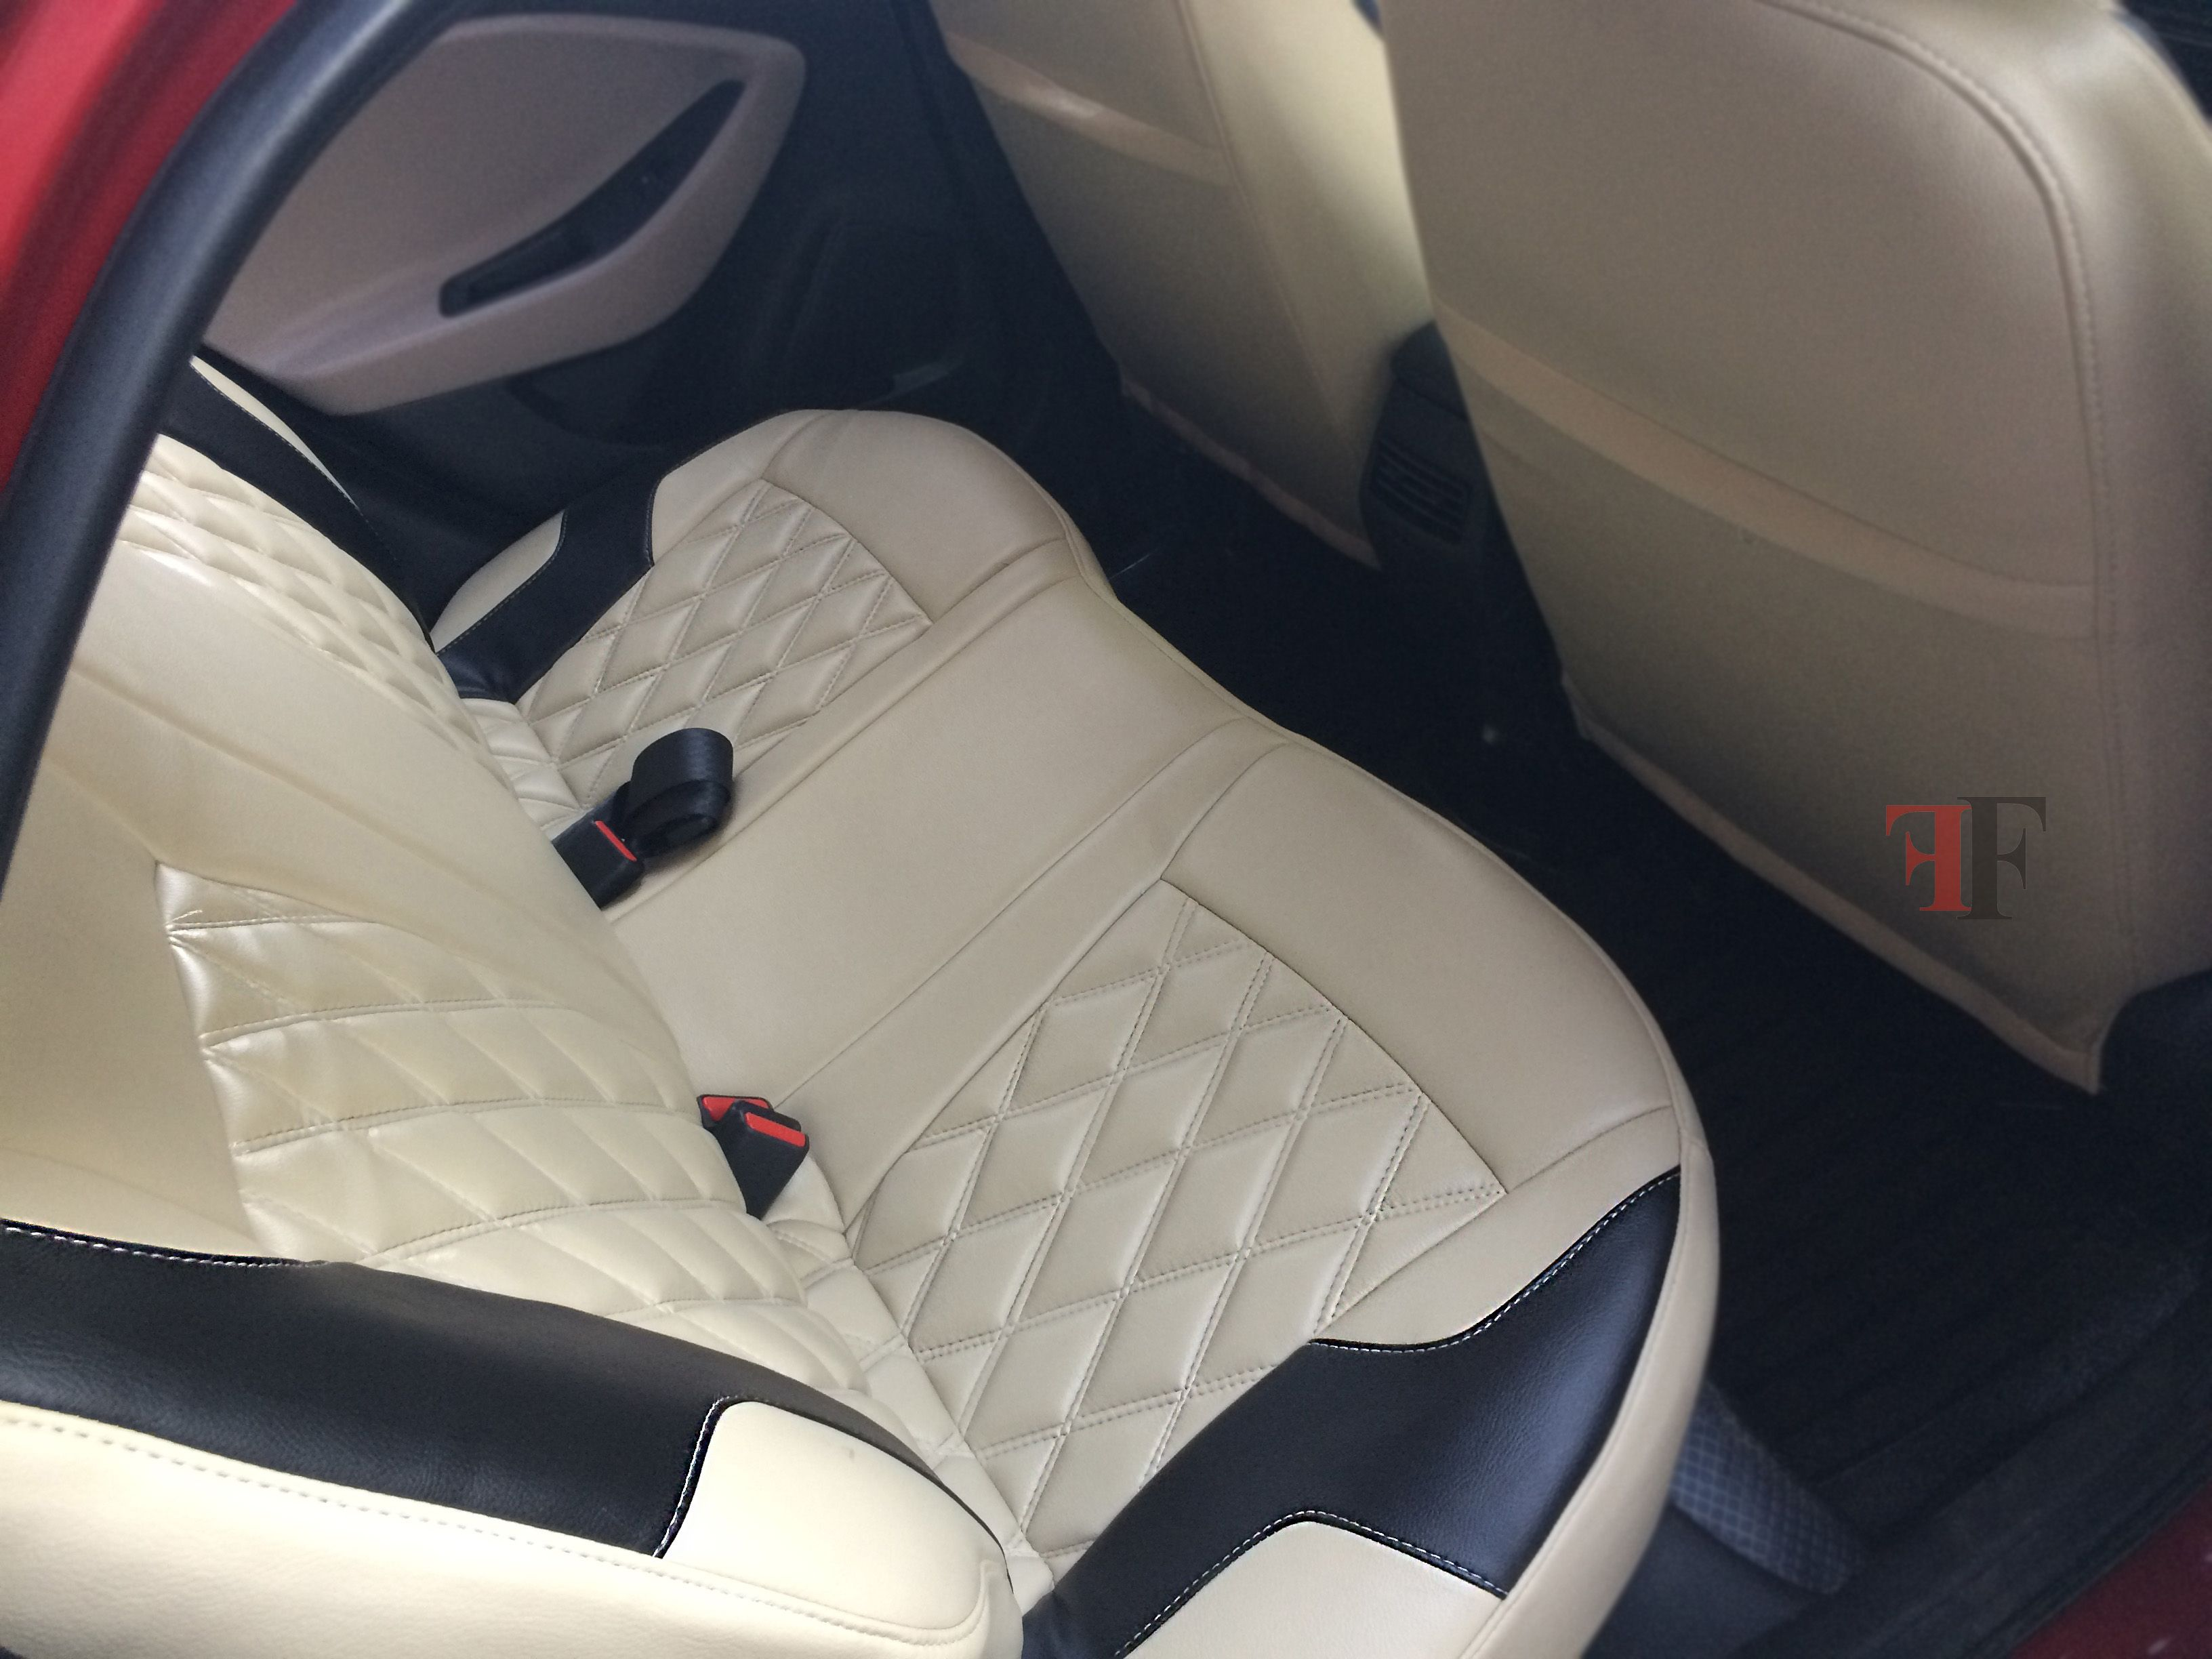 Floor mats price in chennai - Hyundai Elite I20 Seat Cover From Ff Car Accessories Woods Road Chennai